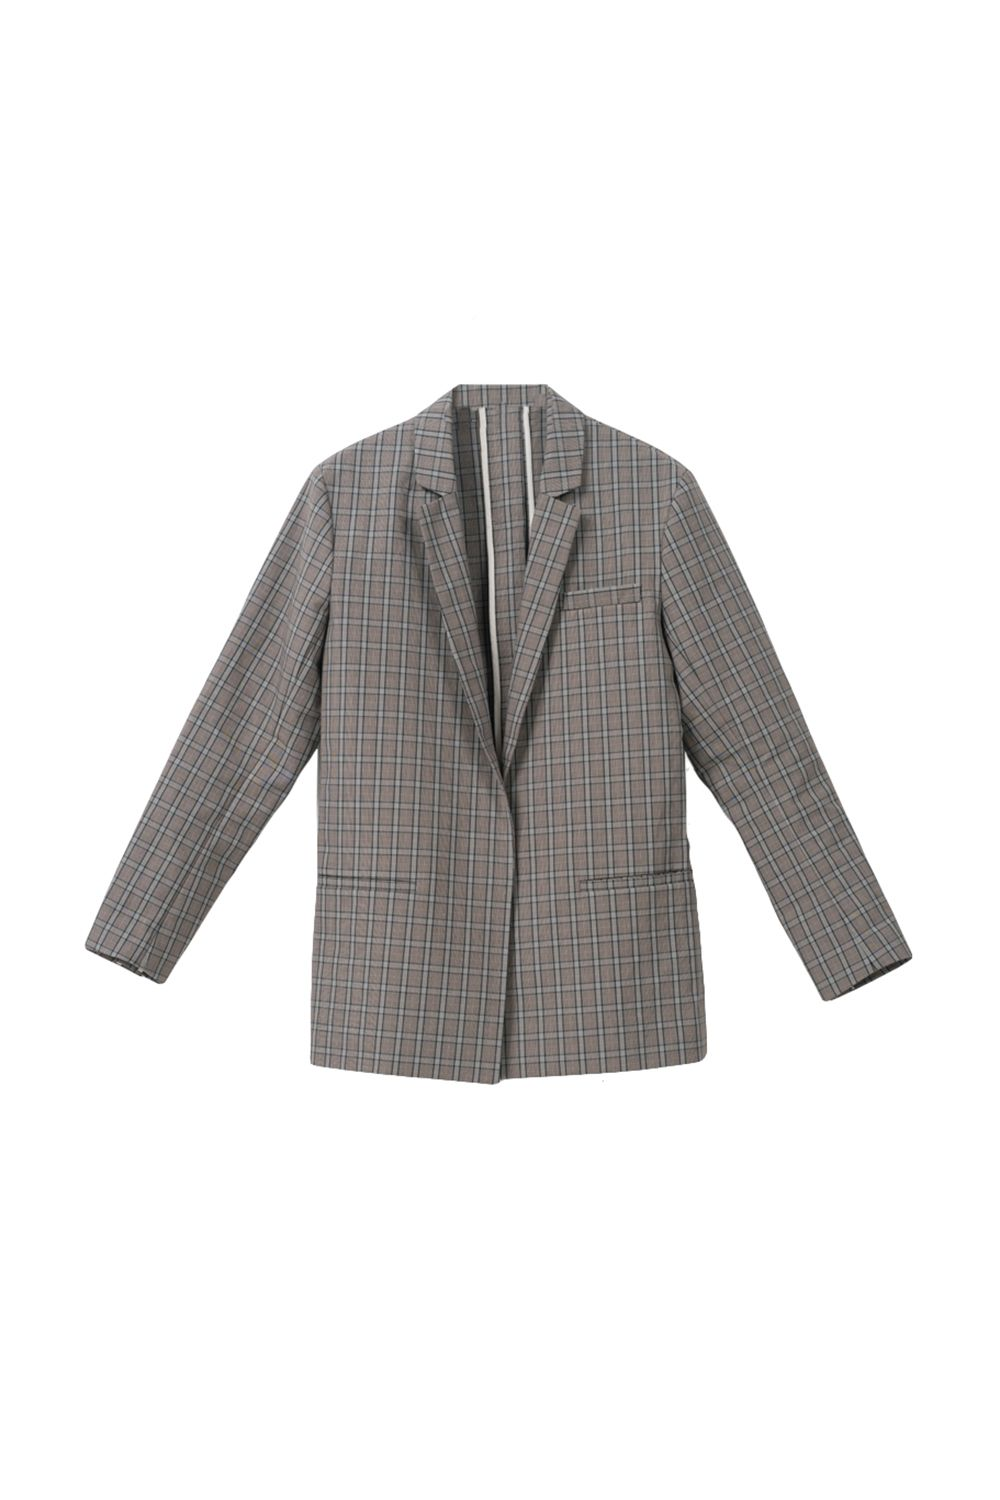 "<p>Back buttons take the standard gray flannel blazer up a notch. </p><p>Front Row Shop, $94; <a href=""http://www.frontrowshop.com/product/frs-wide-shoulder-blazer-with-back-button"" target=""_blank"" data-tracking-id=""recirc-text-link"">frontrowshop.com</a>.</p>"